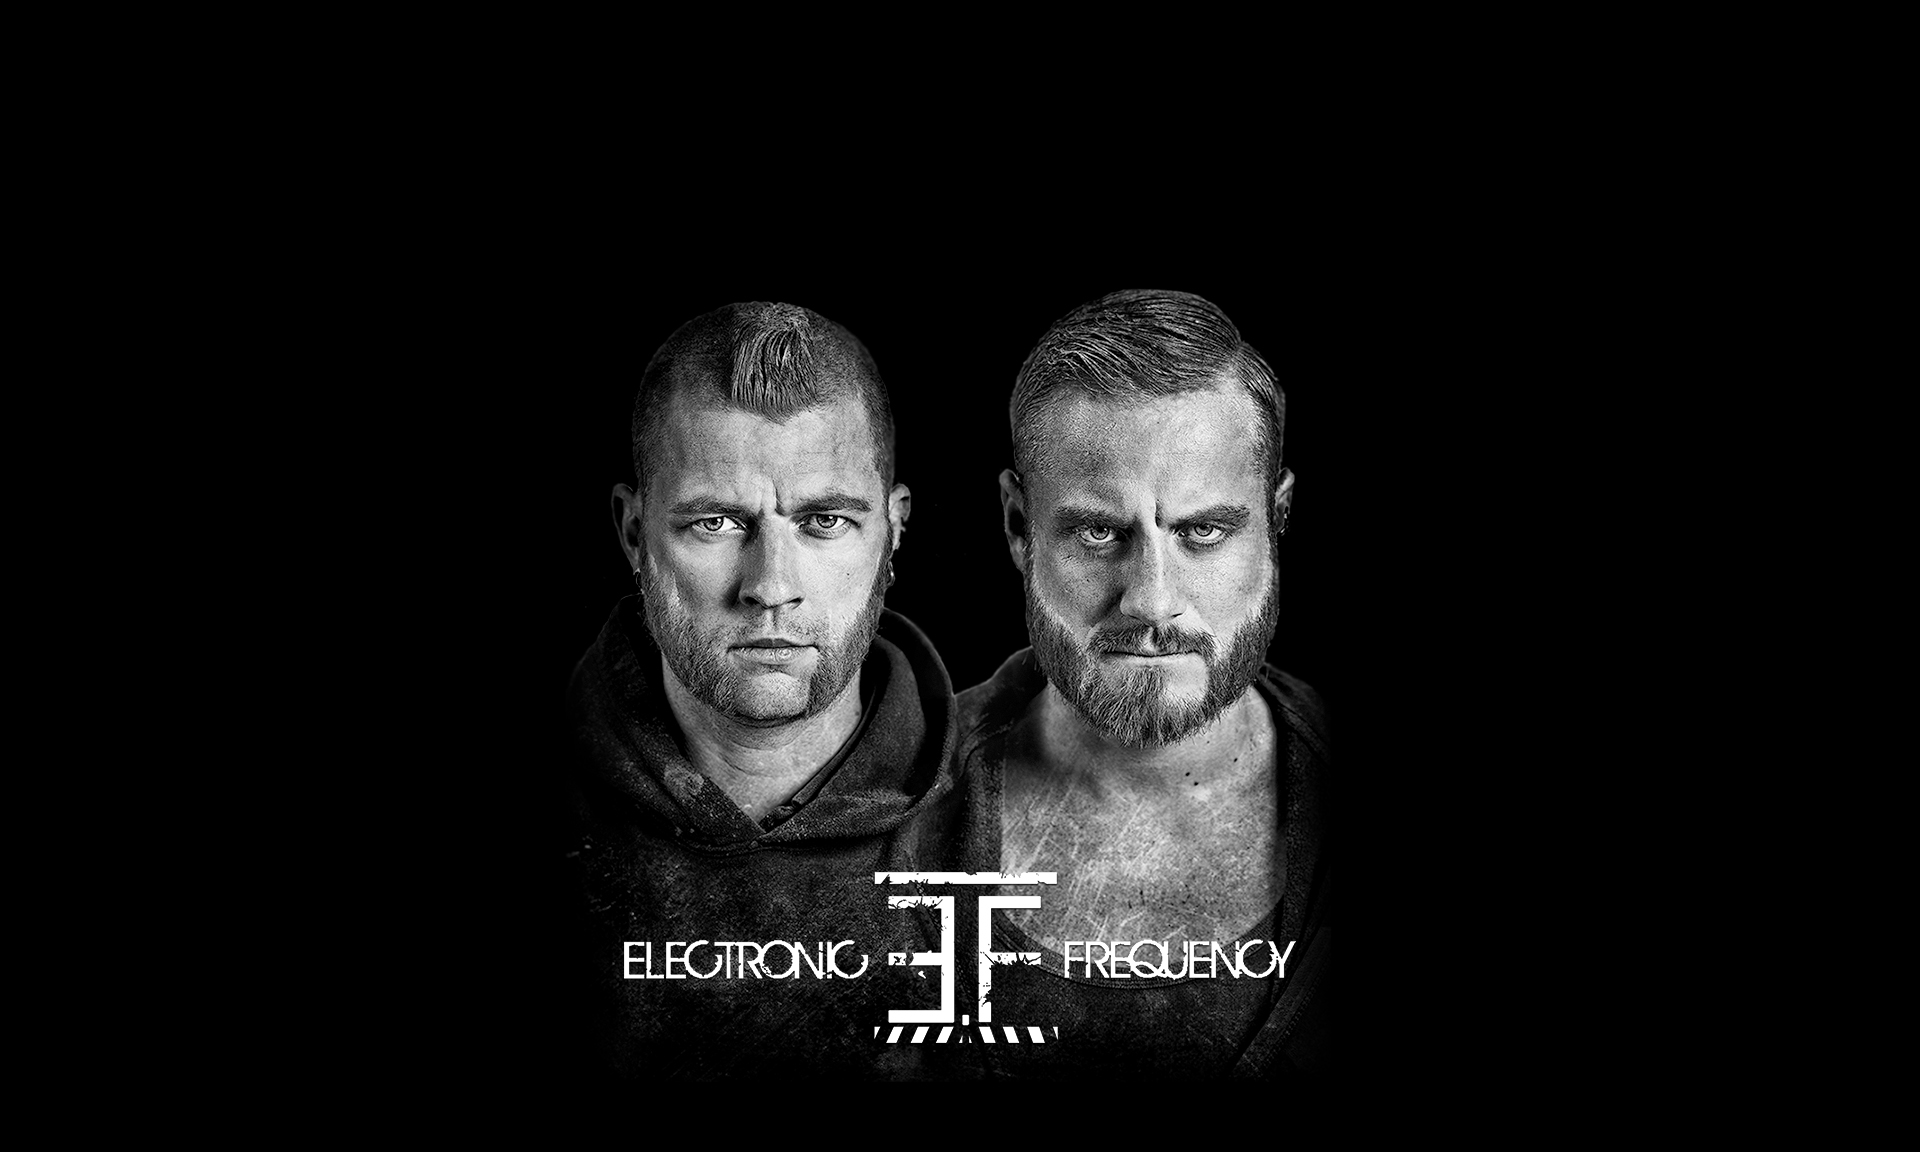 <p>The ELECTRONIC FREQUENCY project was formed in 2010 by Christian Kossat and Daniel Piepenburg (now no longer with the band), then later joined by Oliver Schulz. With the release of their debut album &#8216;Kampfraum Guben&#8217; in late 2010 with songs like Deprived Area, Terrorism or Pedophile they chose to tackle [&hellip;]</p>